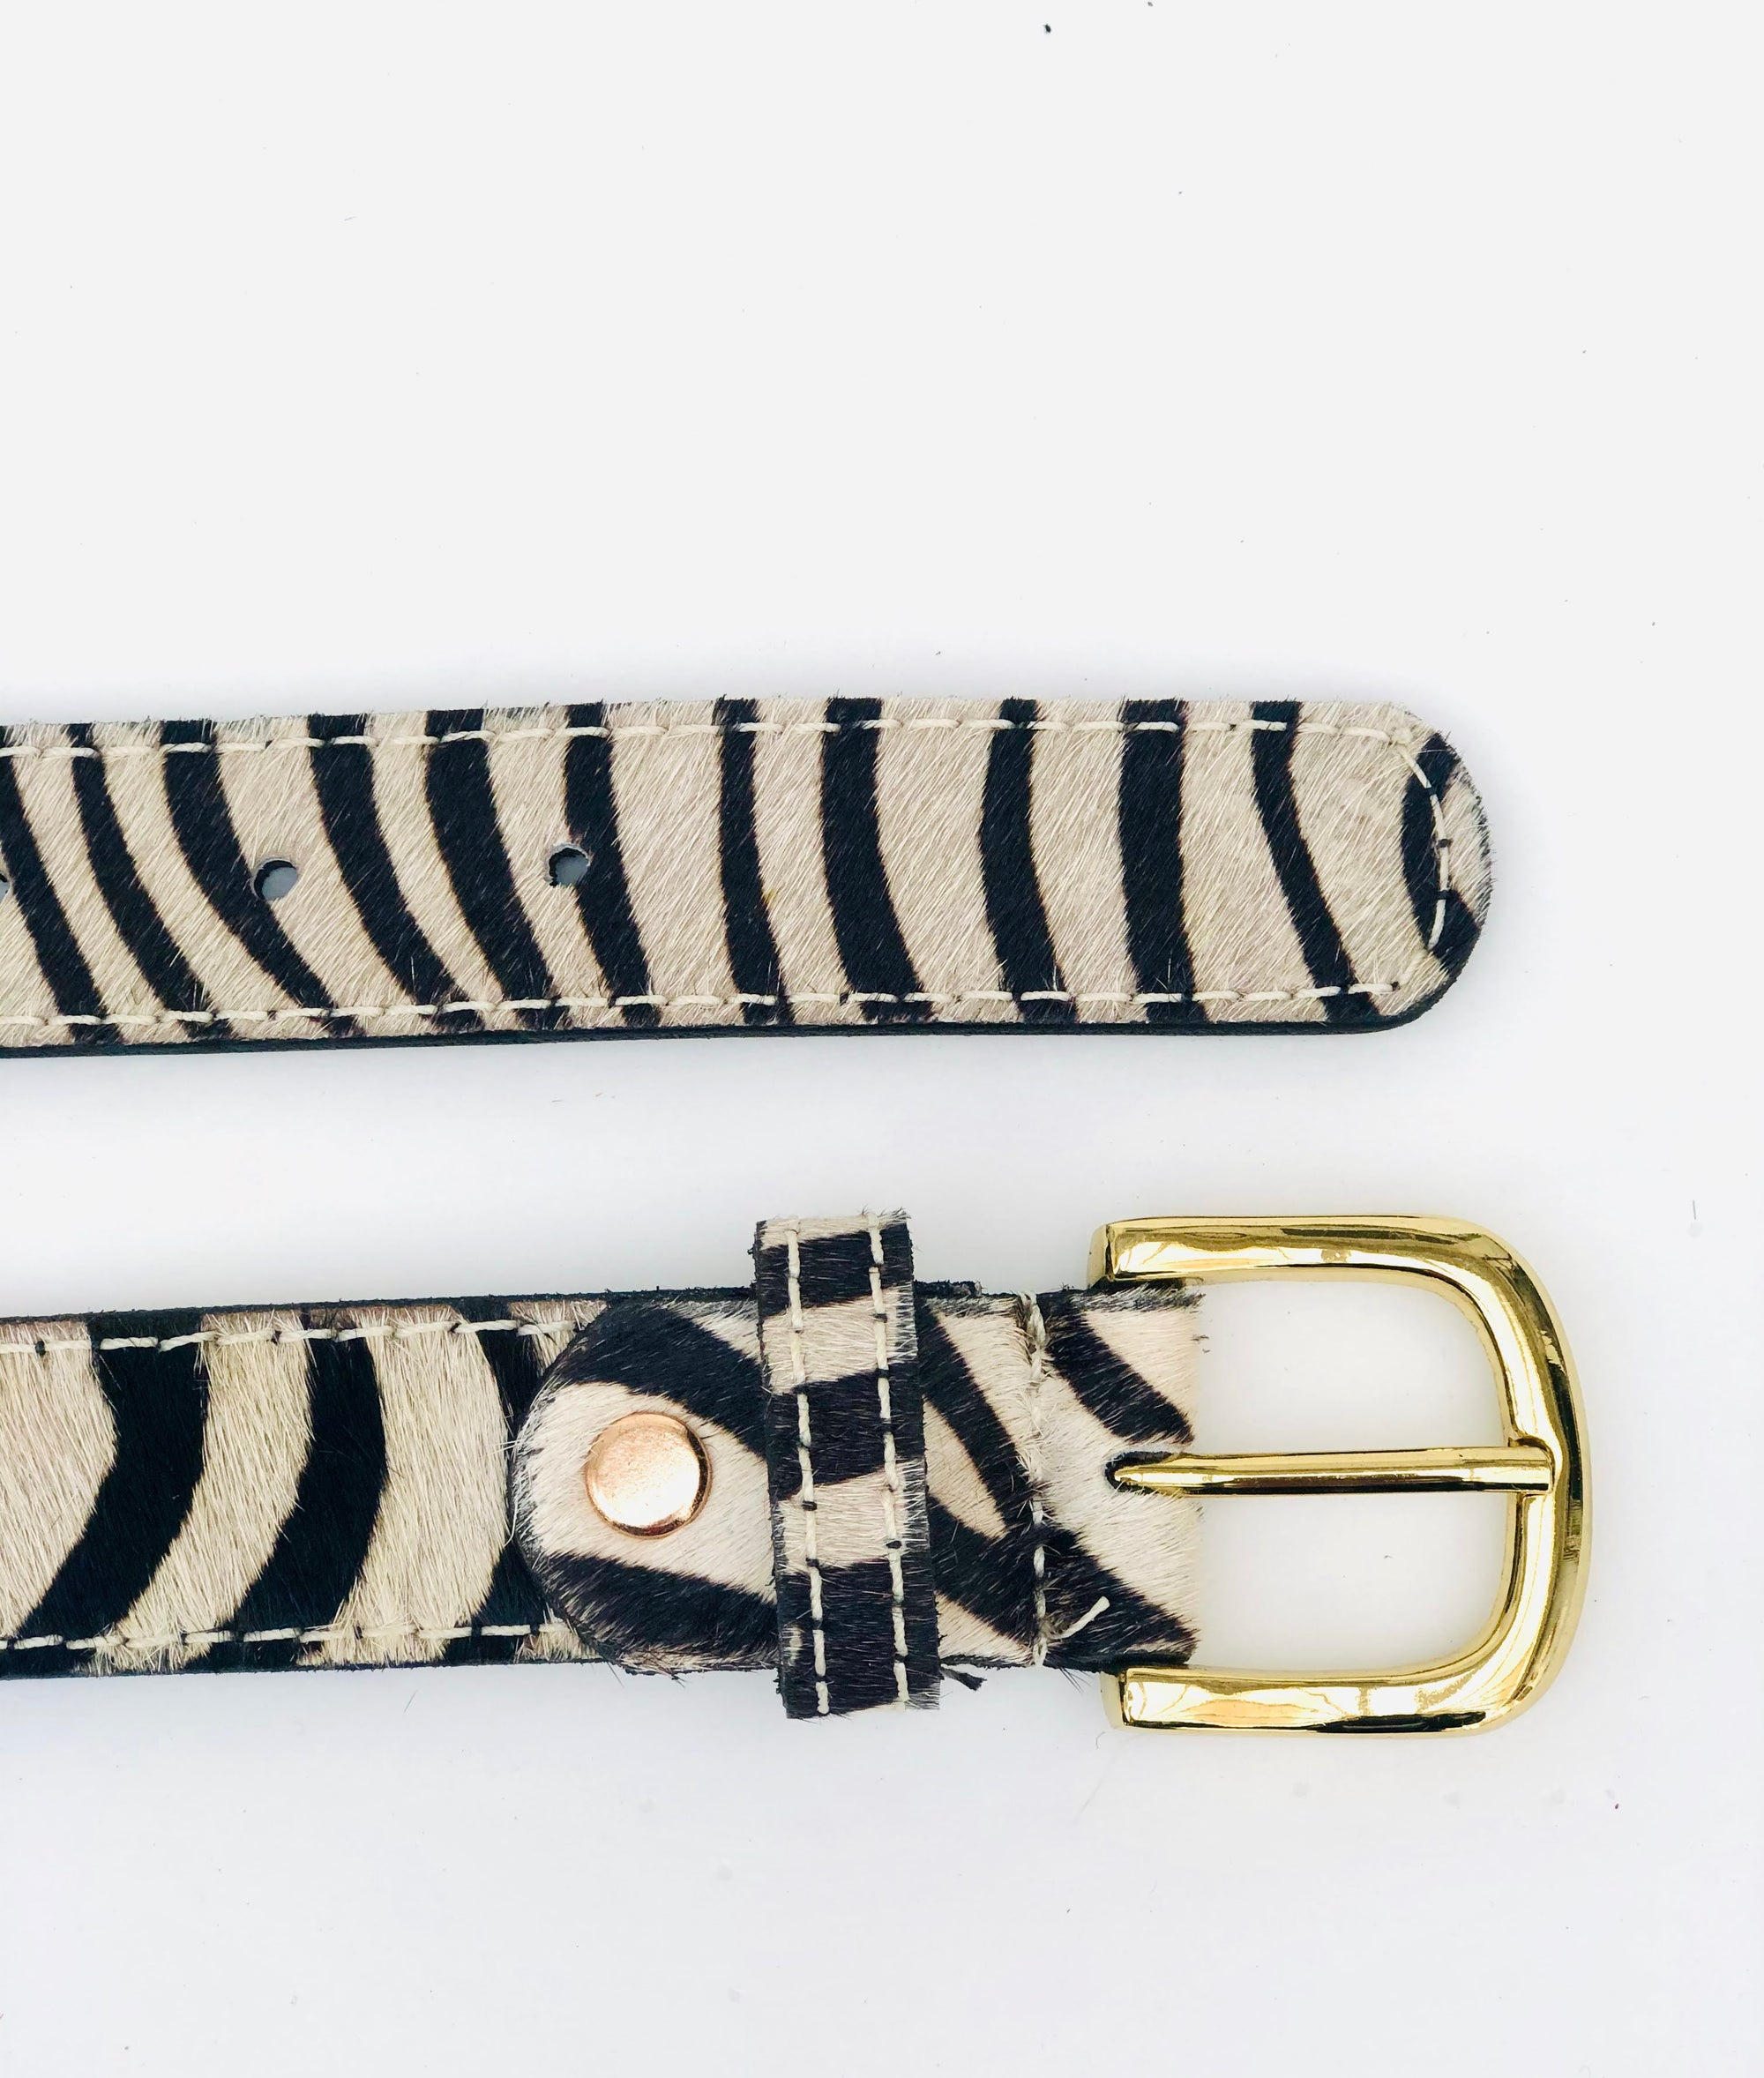 Zebra hair-on-hide leather womens belt